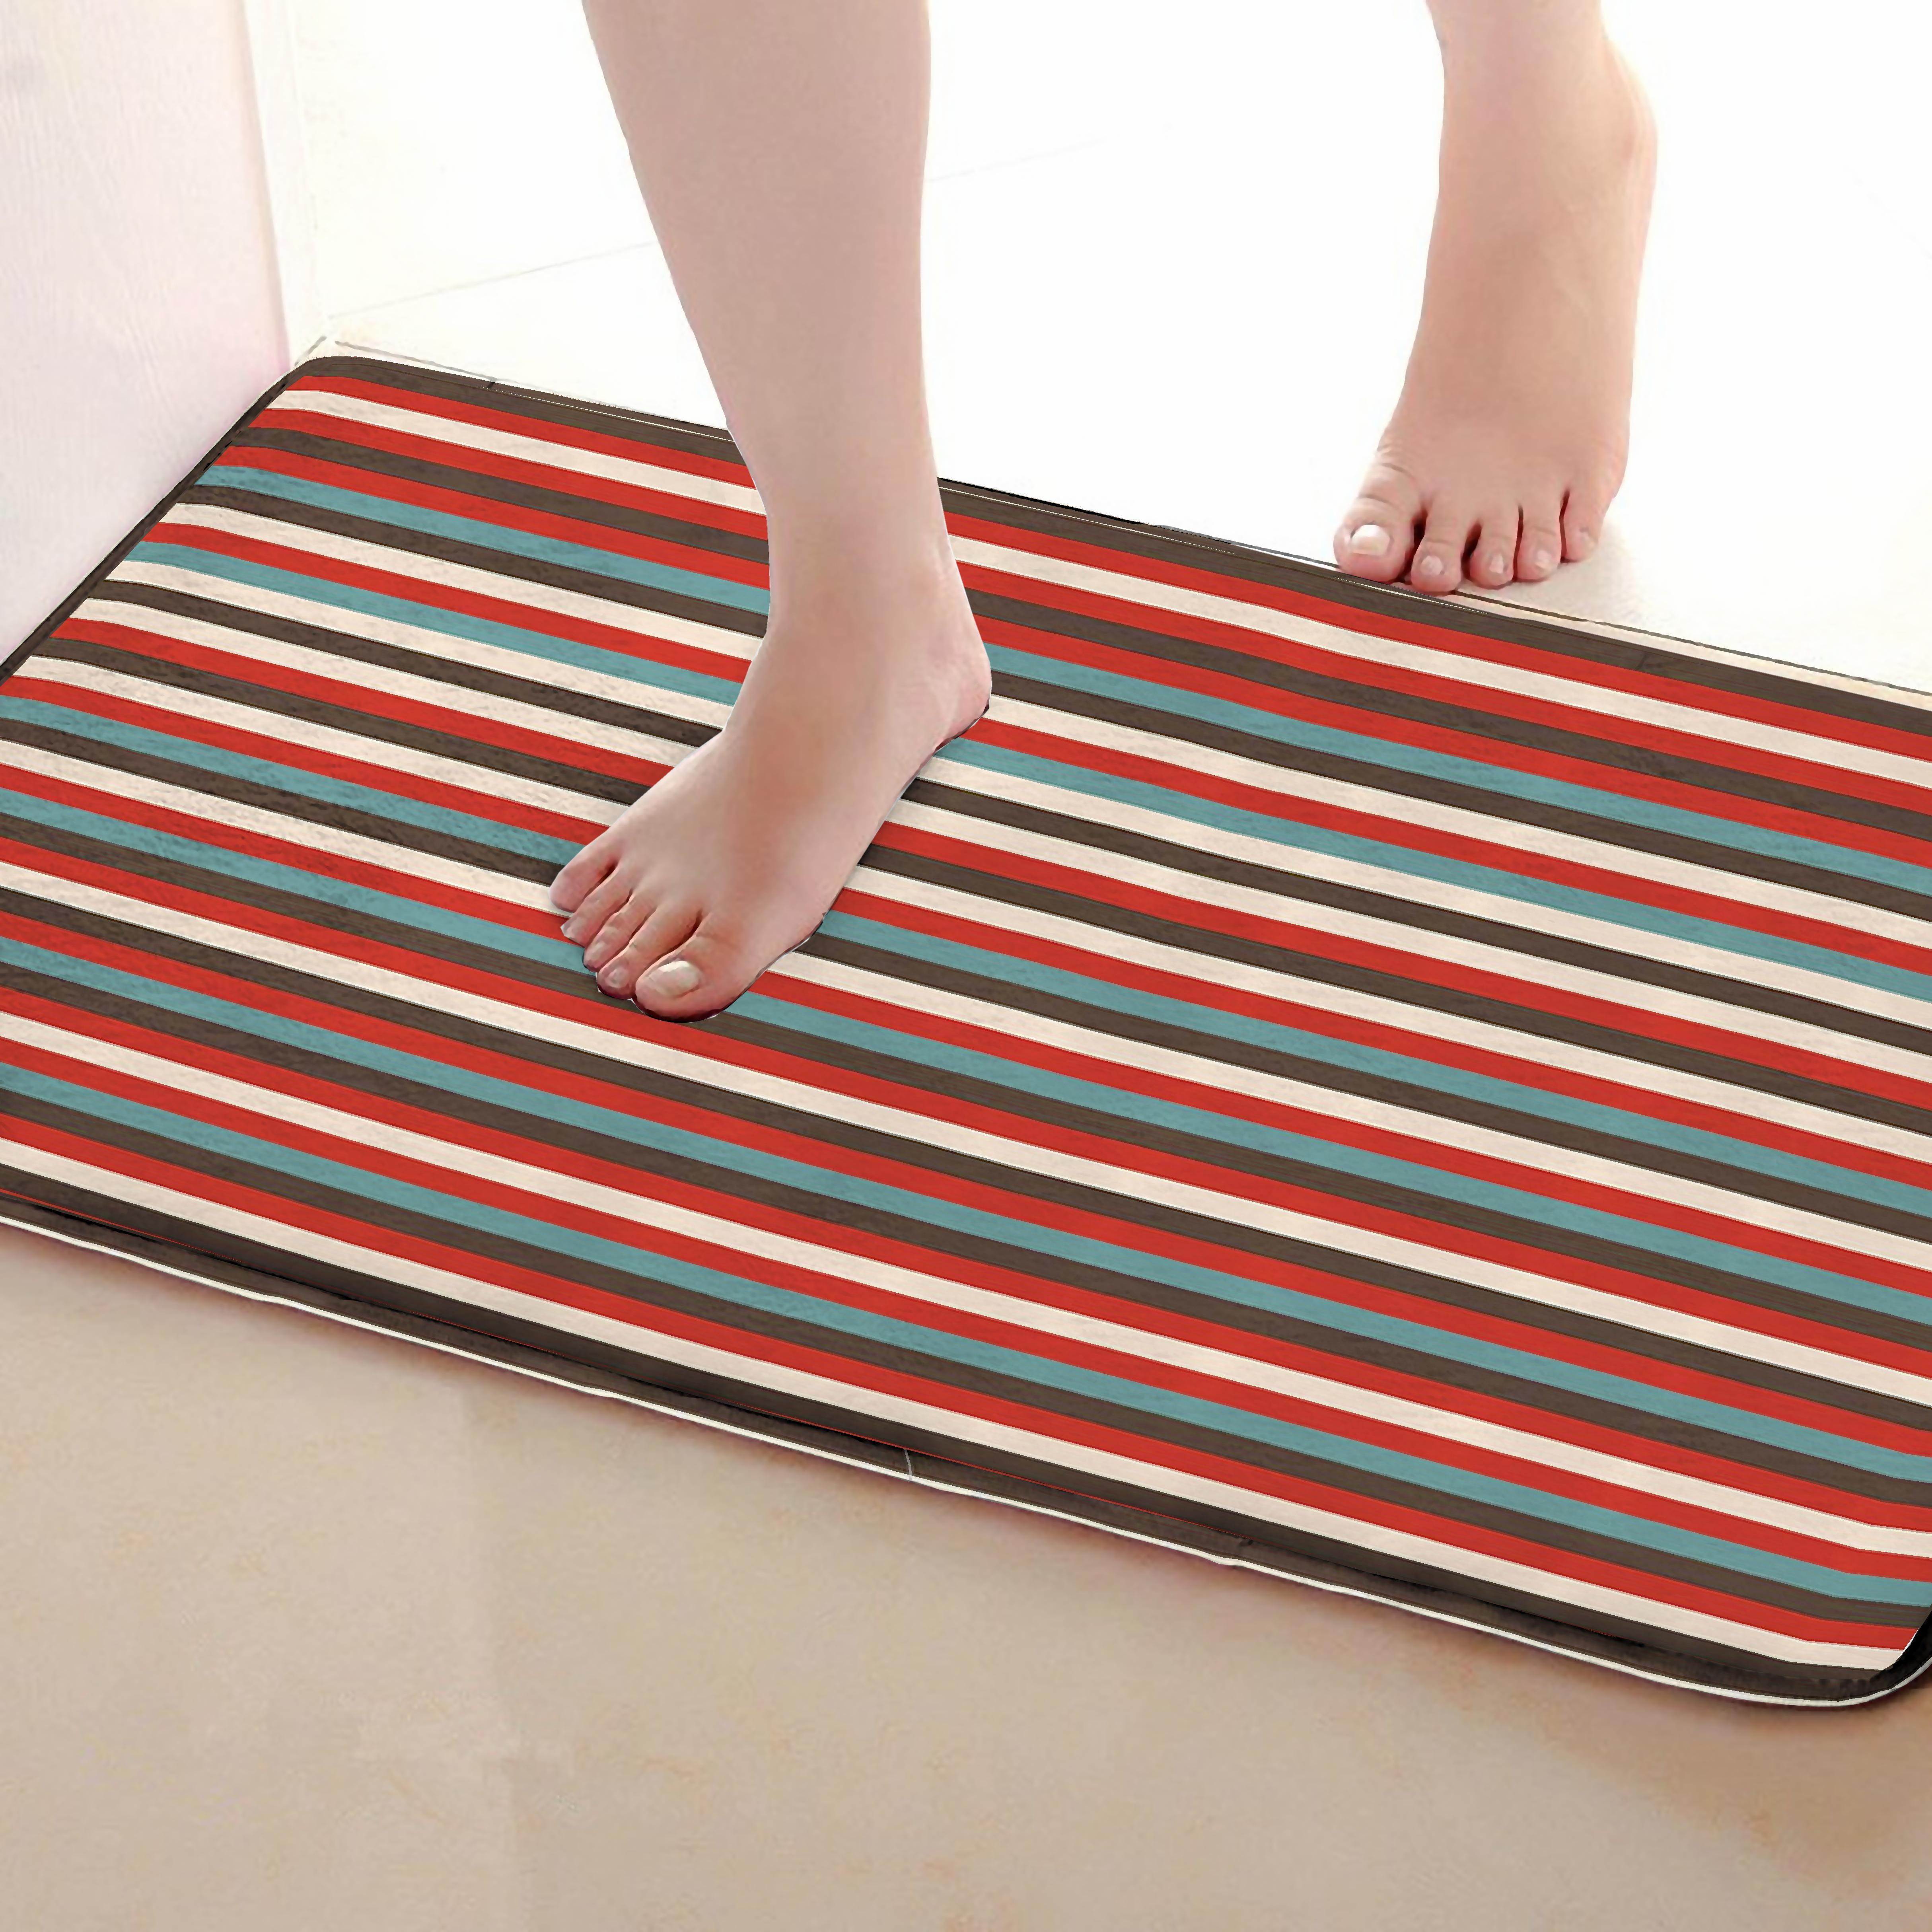 Stripe Style Bathroom Mat,Funny Anti Skid Bath Mat,Shower Curtains Accessories,Matching Your Shower Curtain